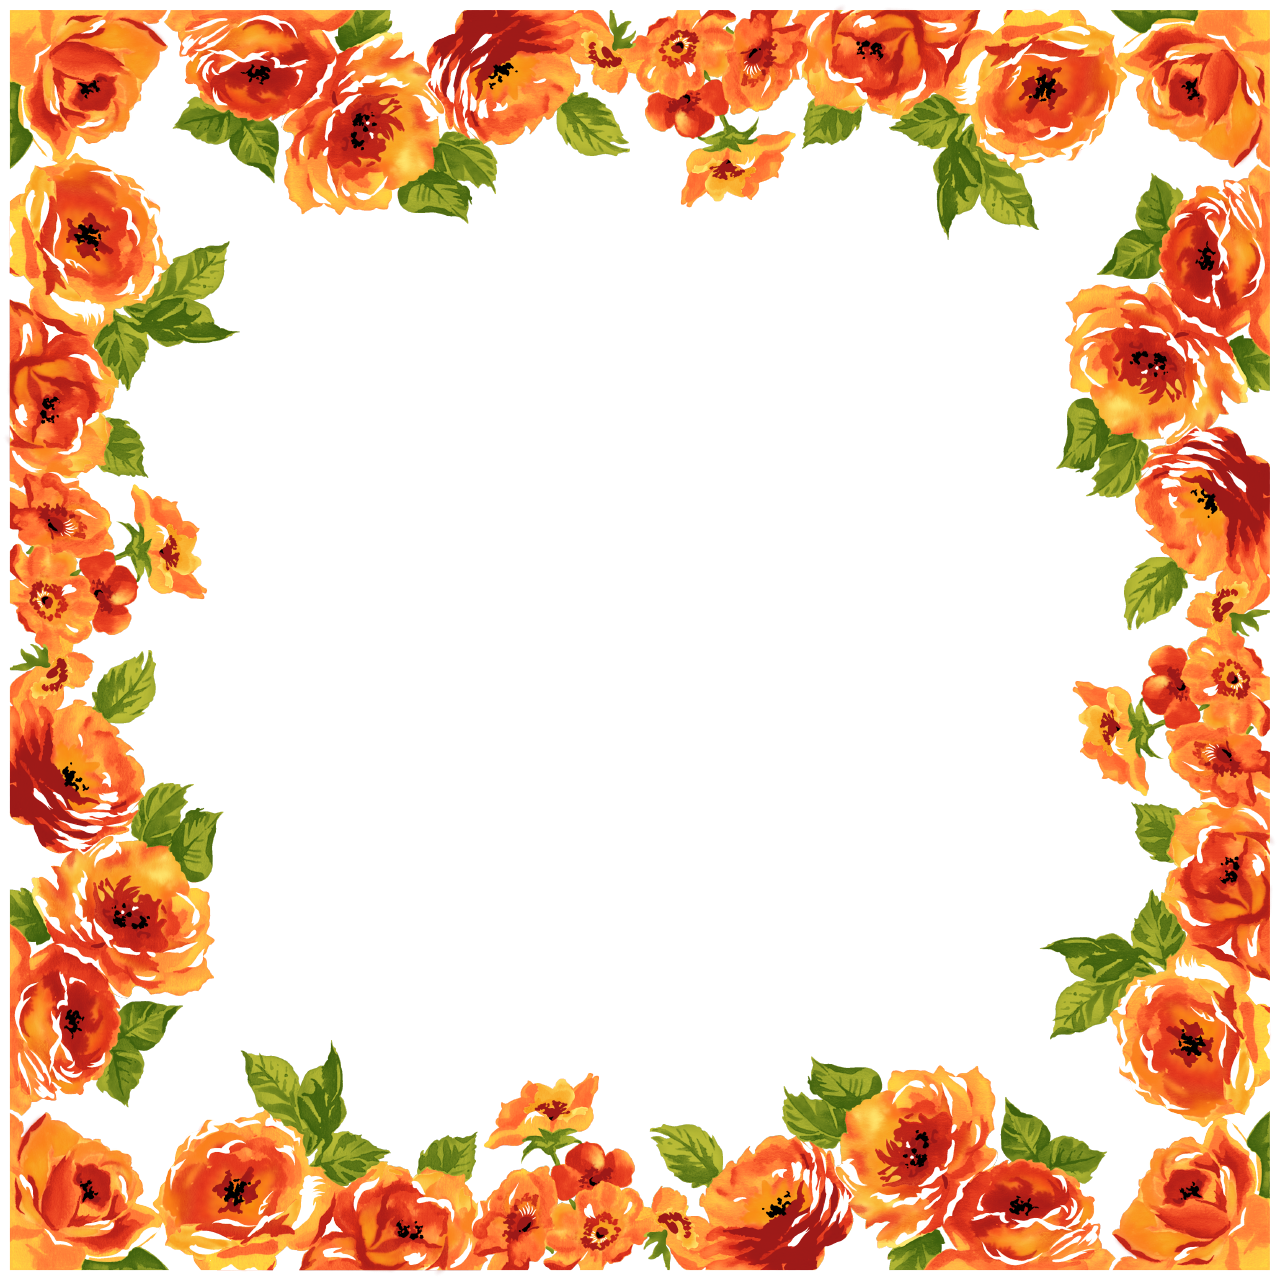 fancy wedding border transparent